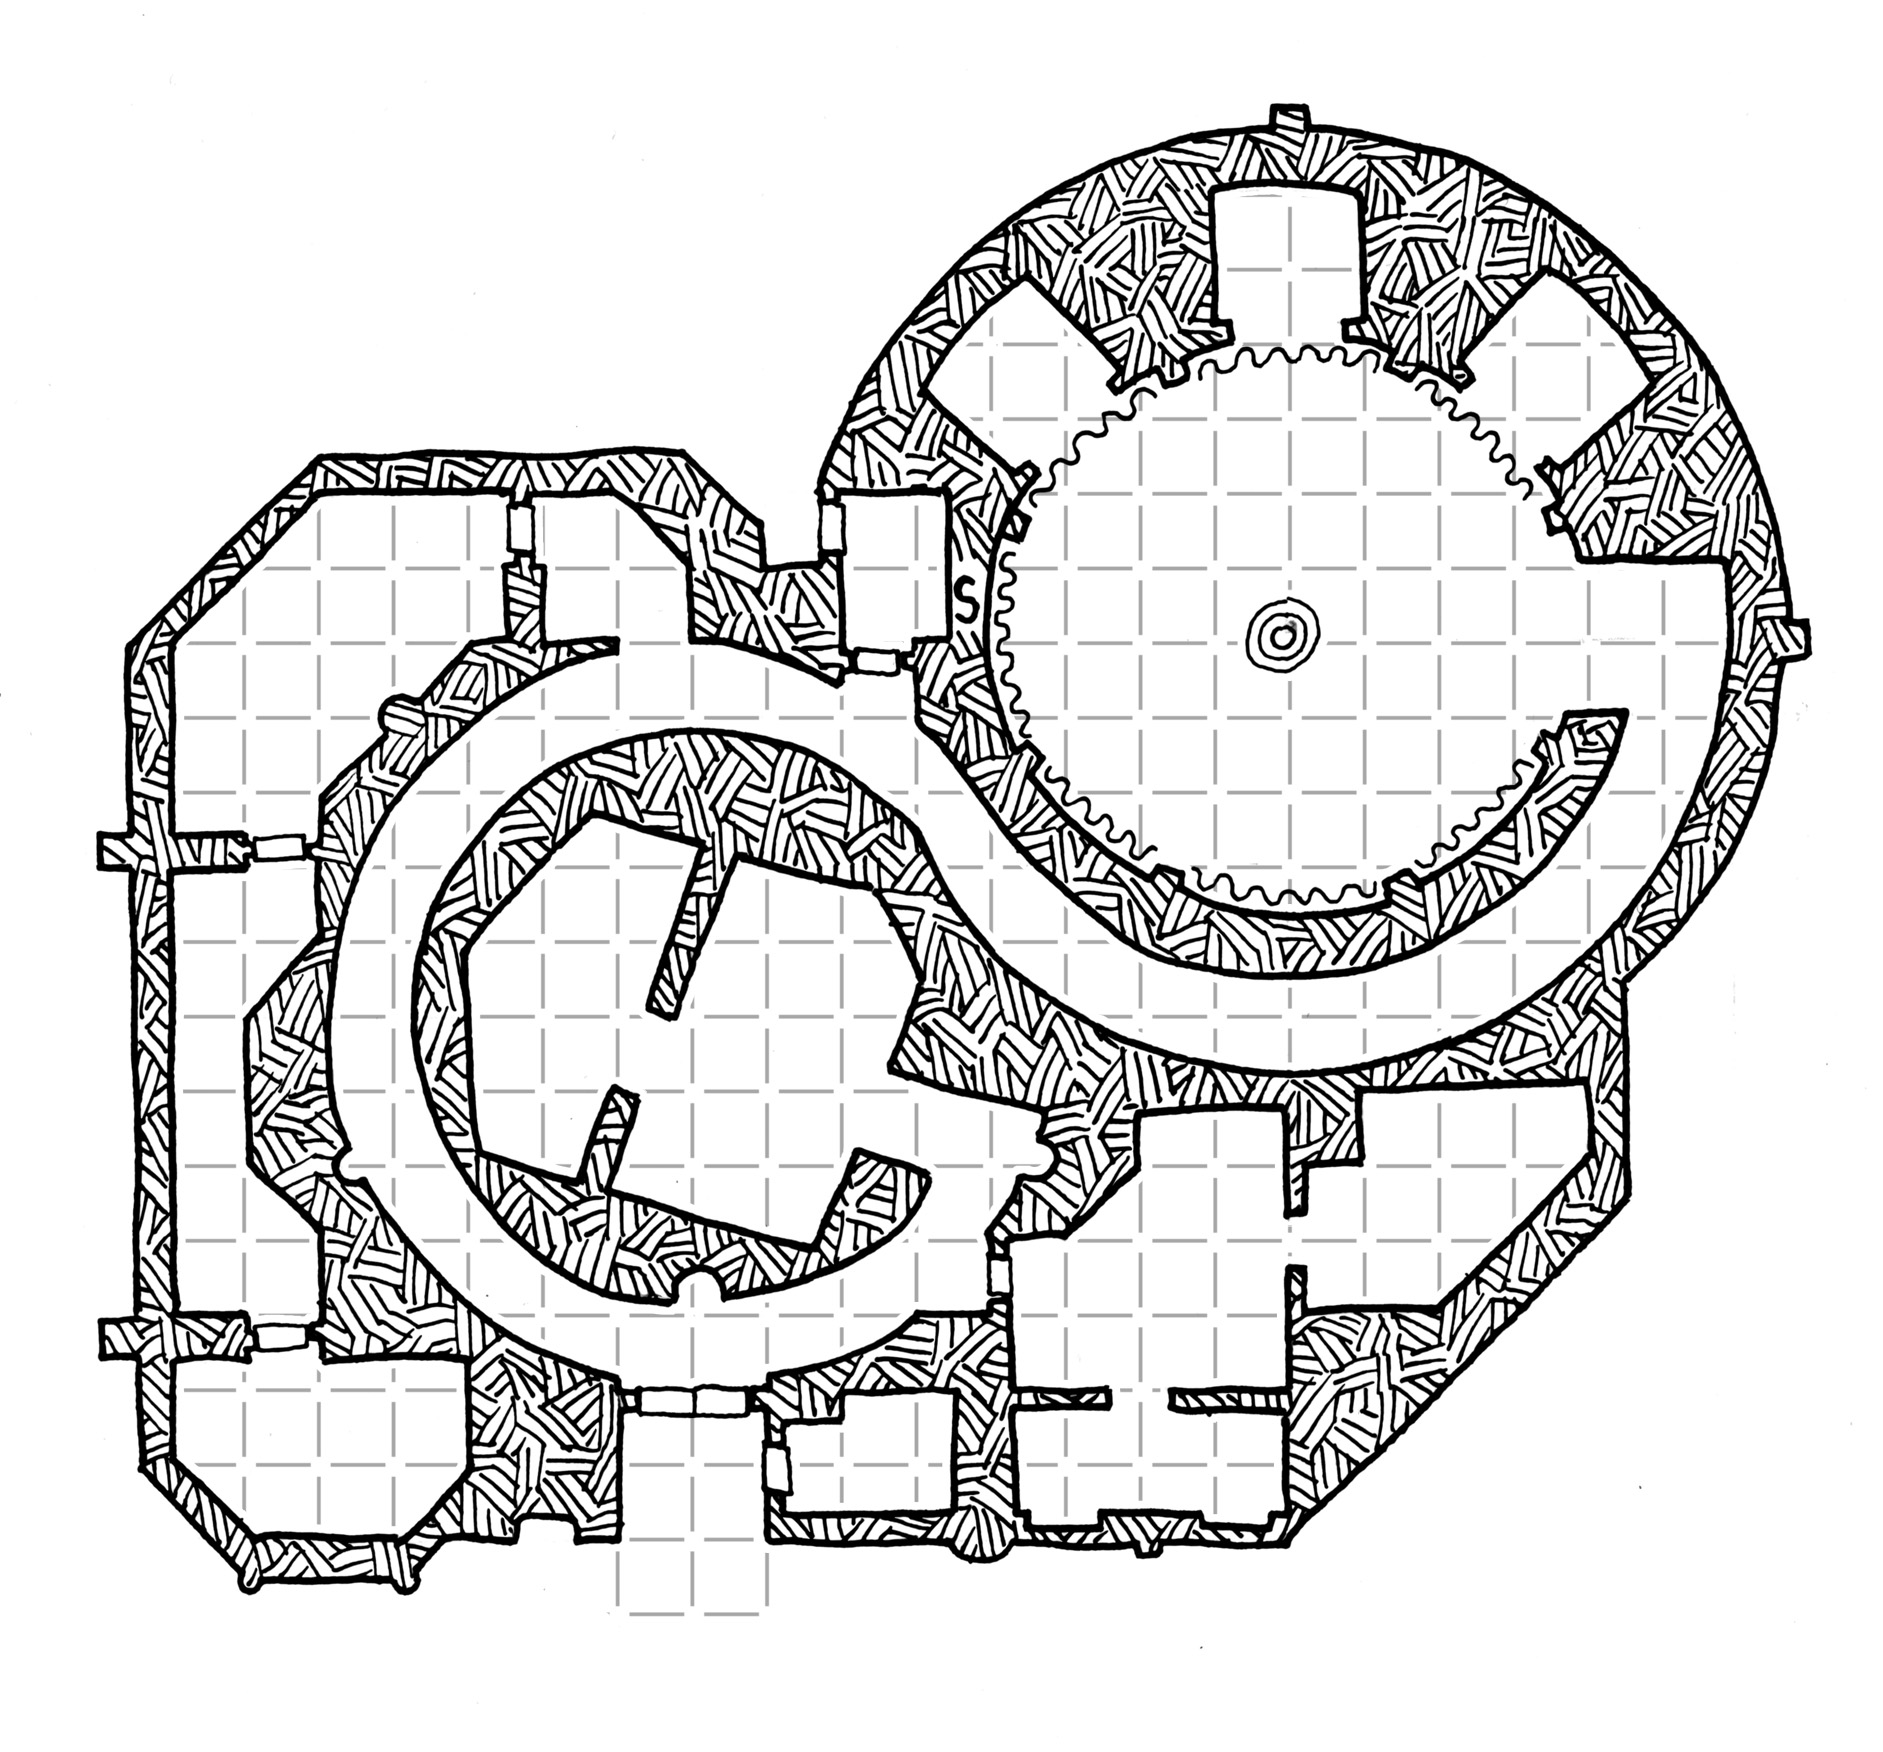 Friday Map] The Spiral Temple | Dyson's Dodecahedron